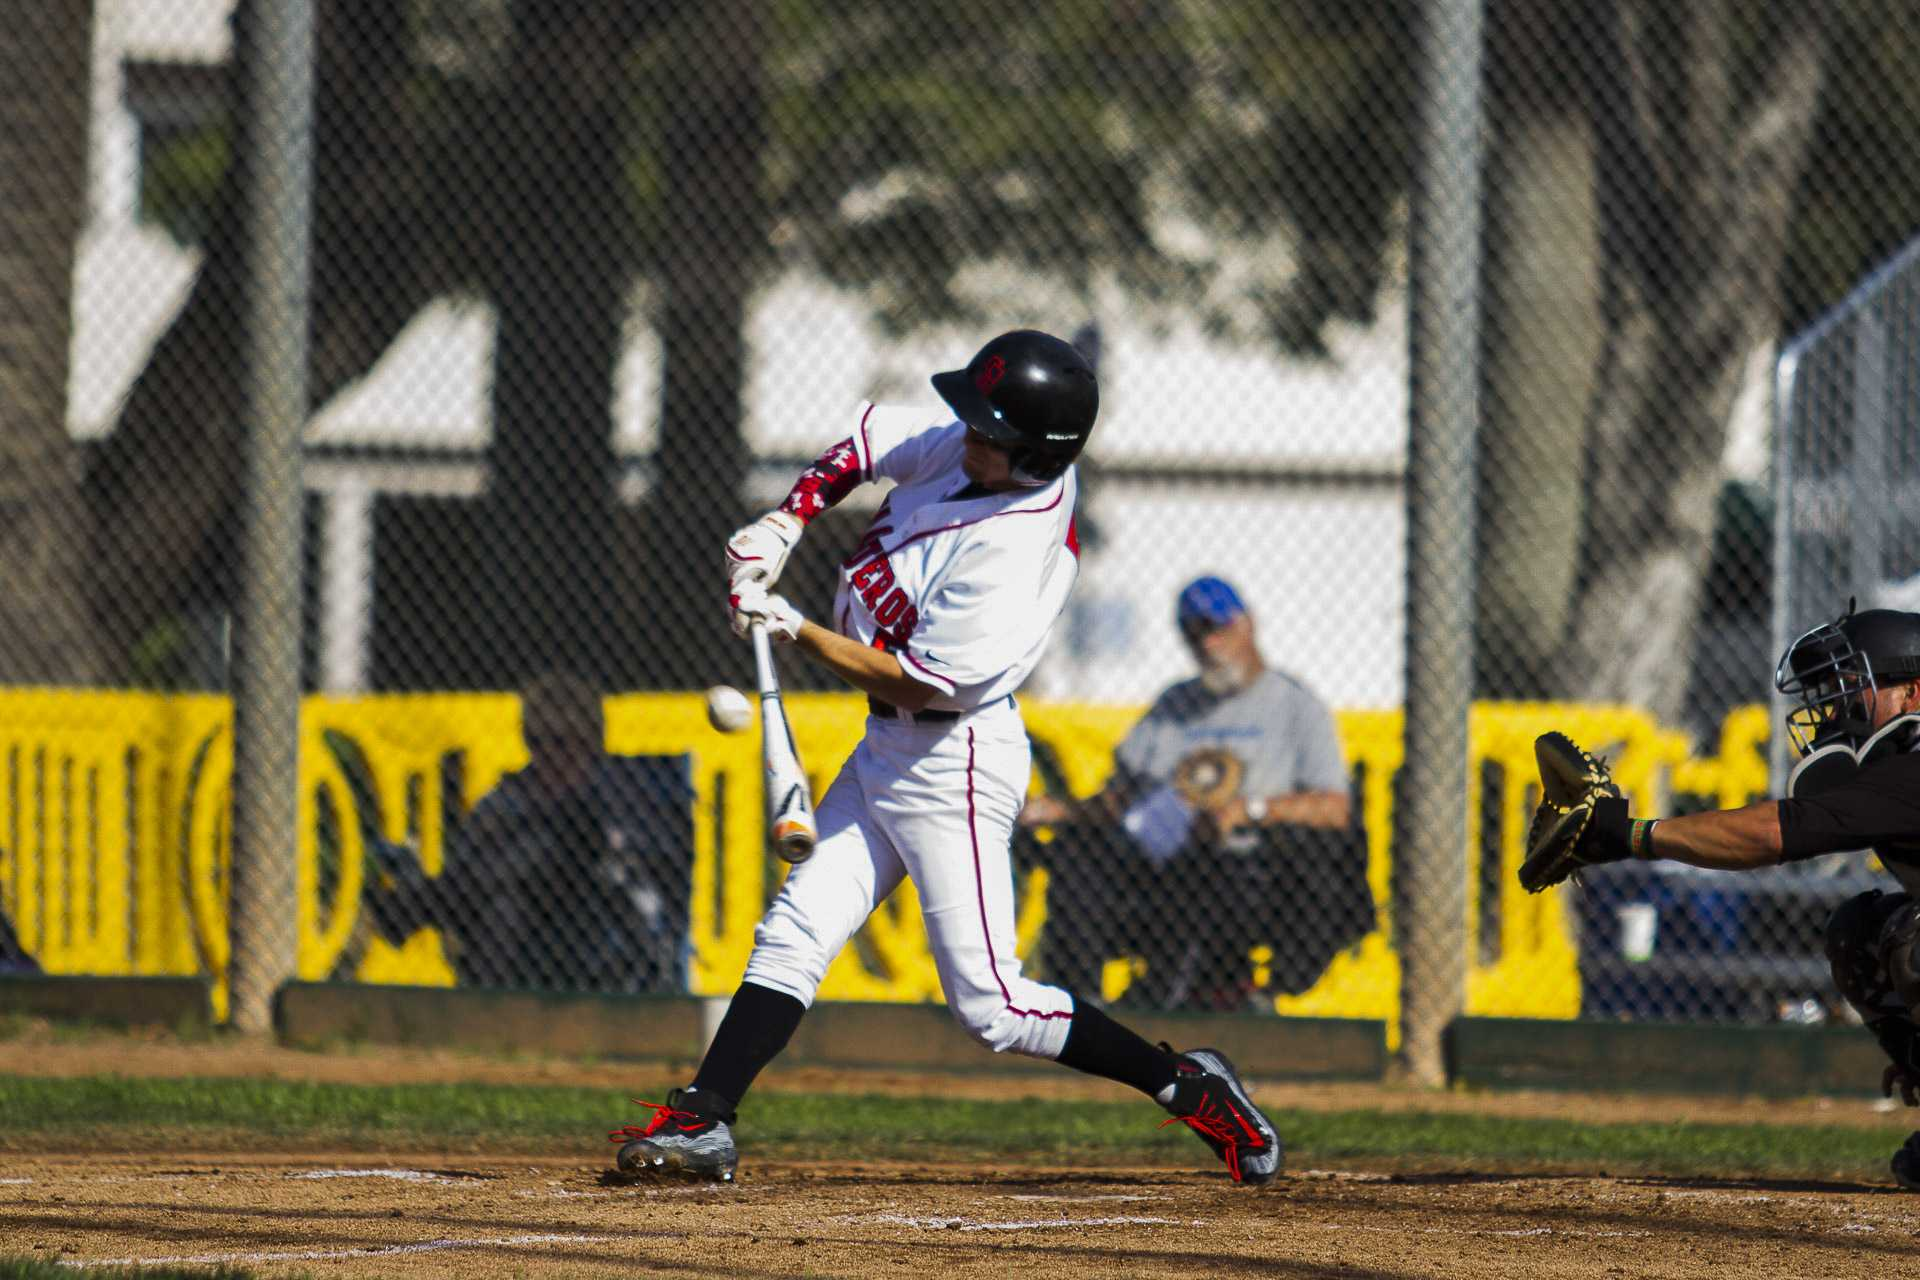 Michael Montpas lines out to right field on Tuesday afternoon, Feb. 23, at the Pershing Park. City College beat Moorpark, 6-2.